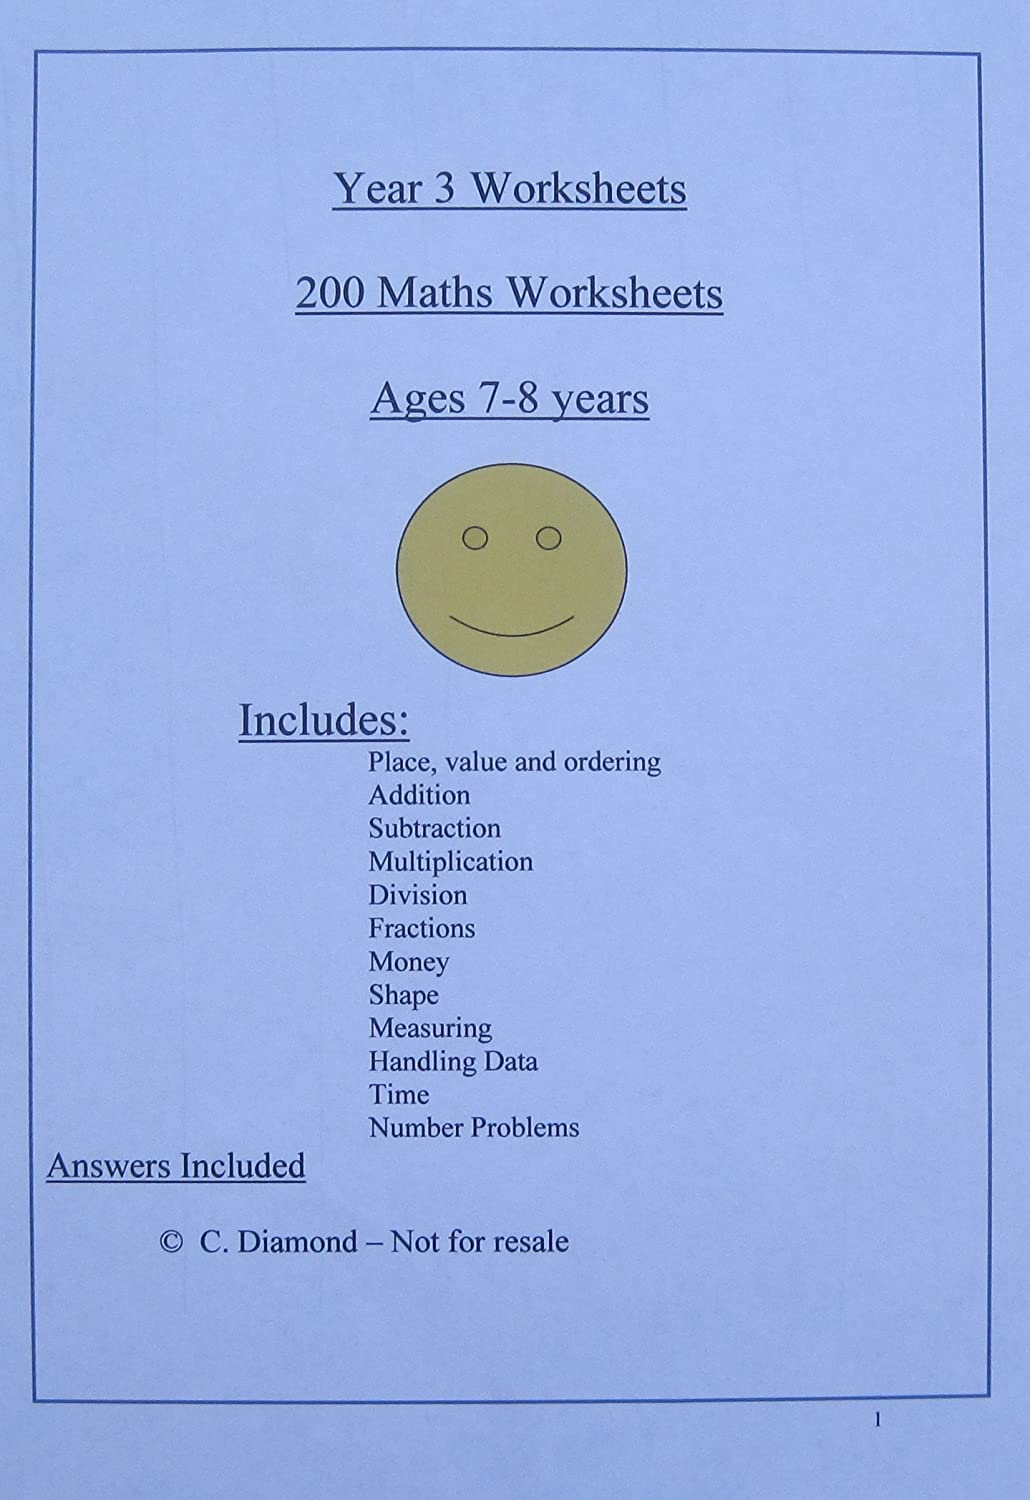 200 Year 2 Maths Worksheets KS1 pdf file to print out Amazonco – Ks1 Worksheets Maths